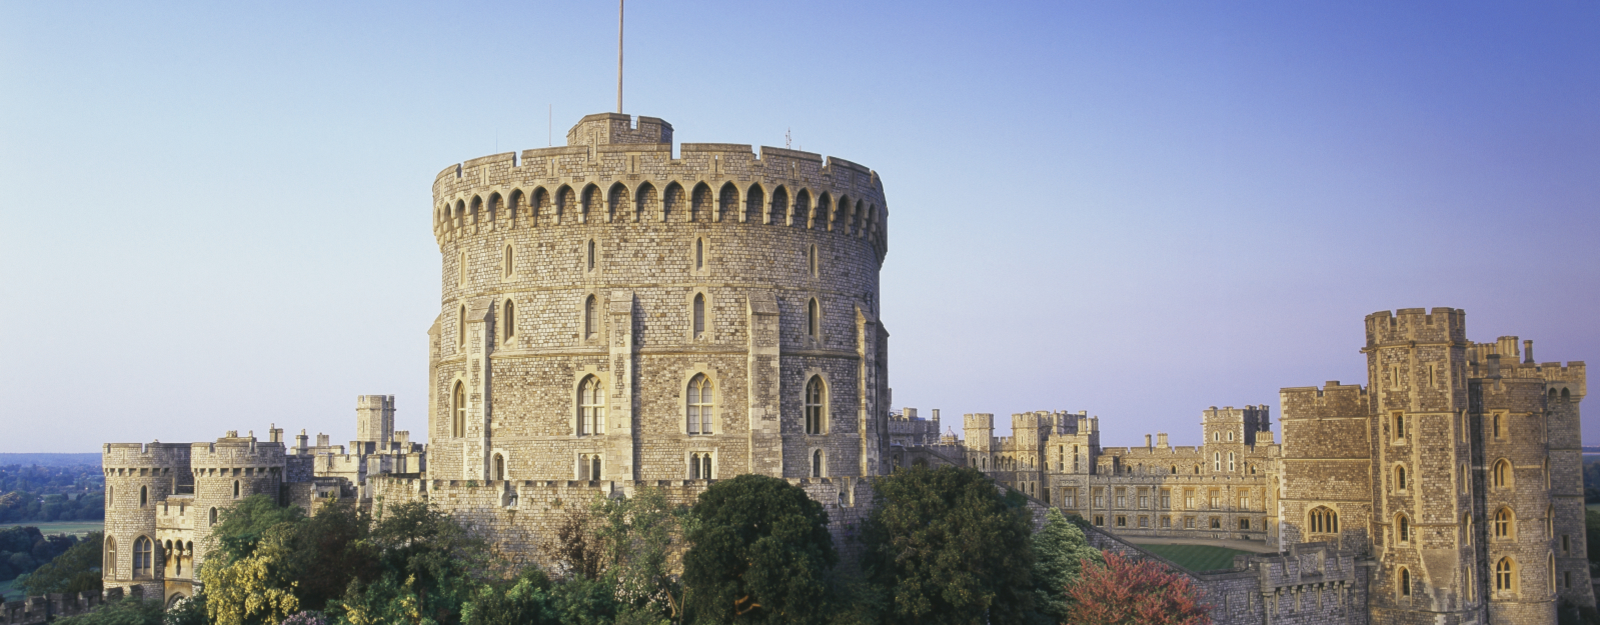 Round Tower at Windsor Castle